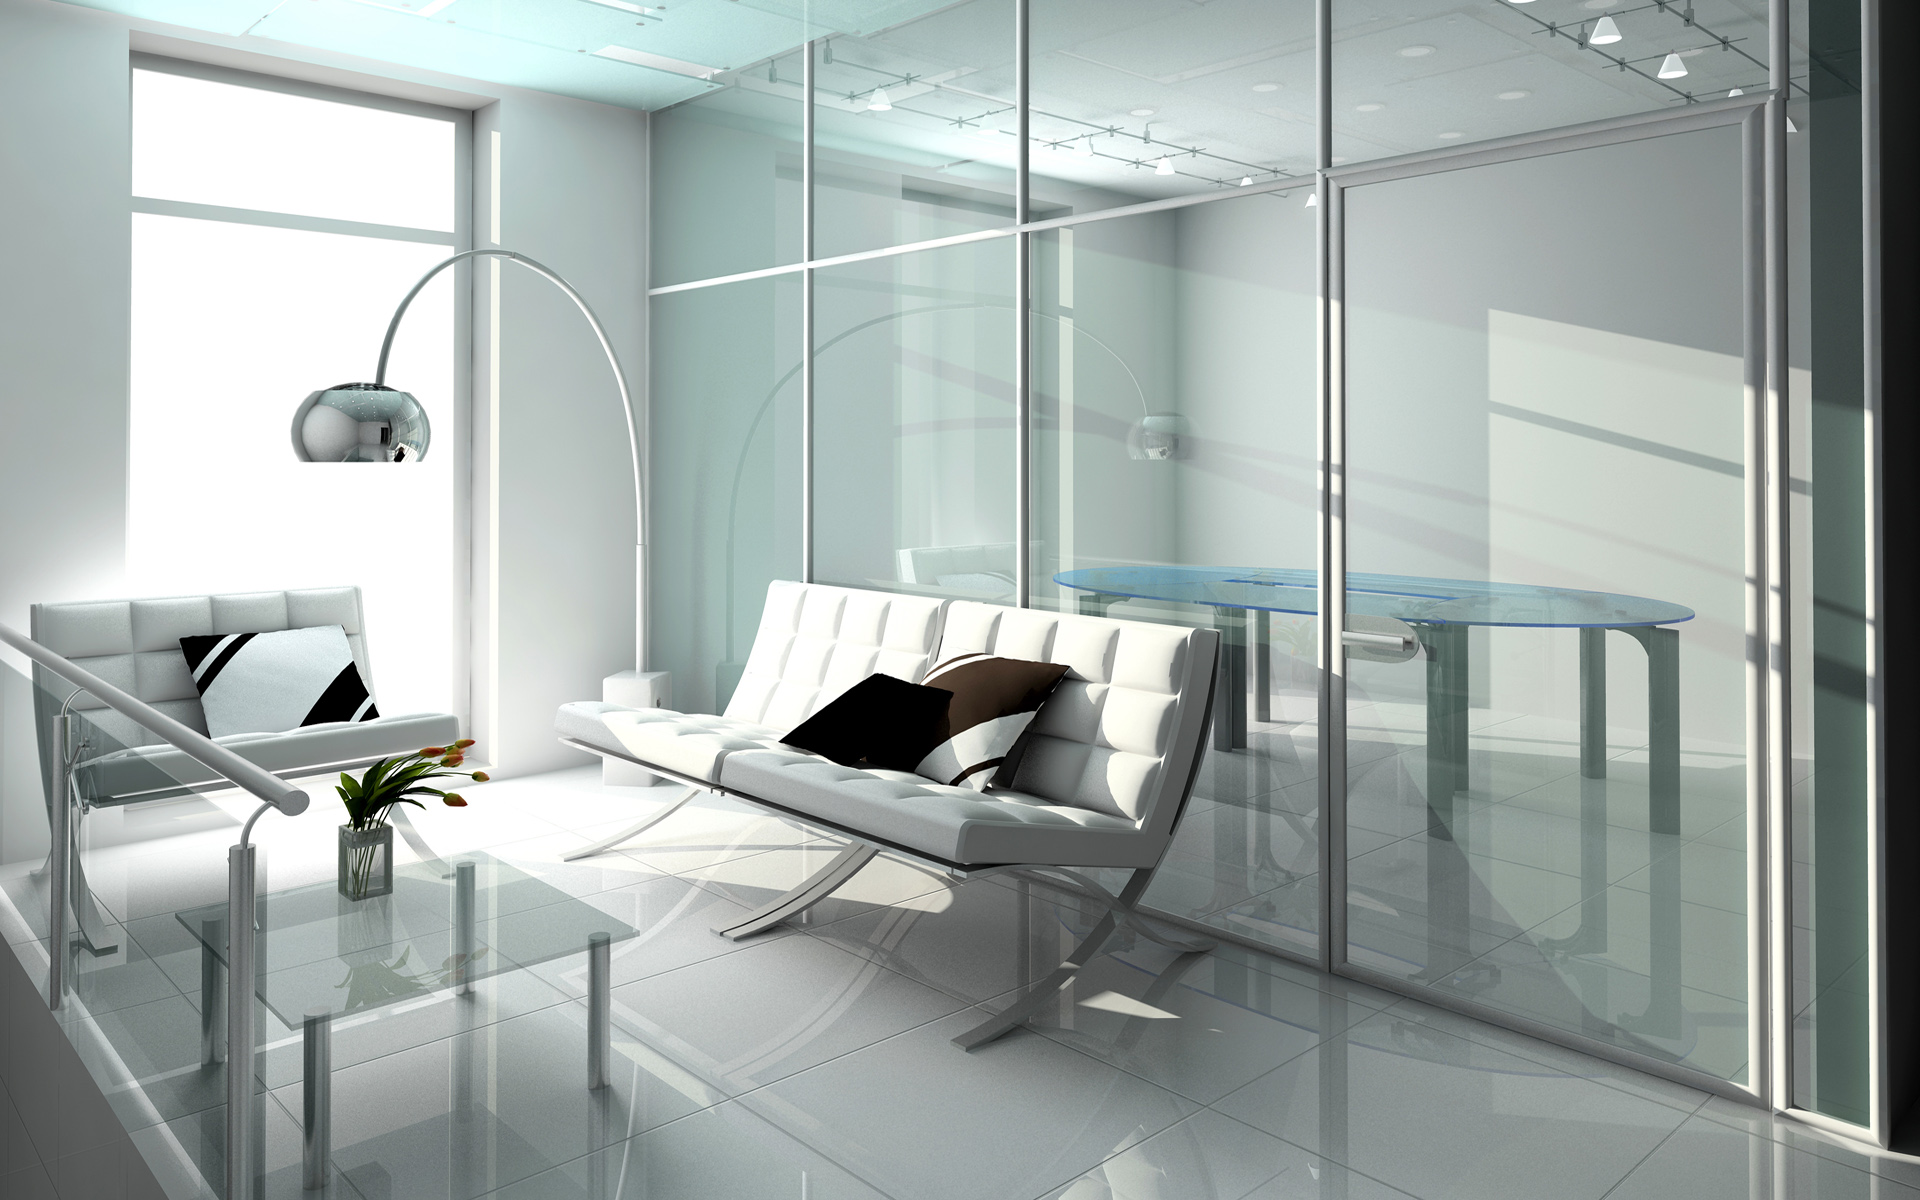 Amazing White Rooms Interior Design 1920 x 1200 · 615 kB · jpeg